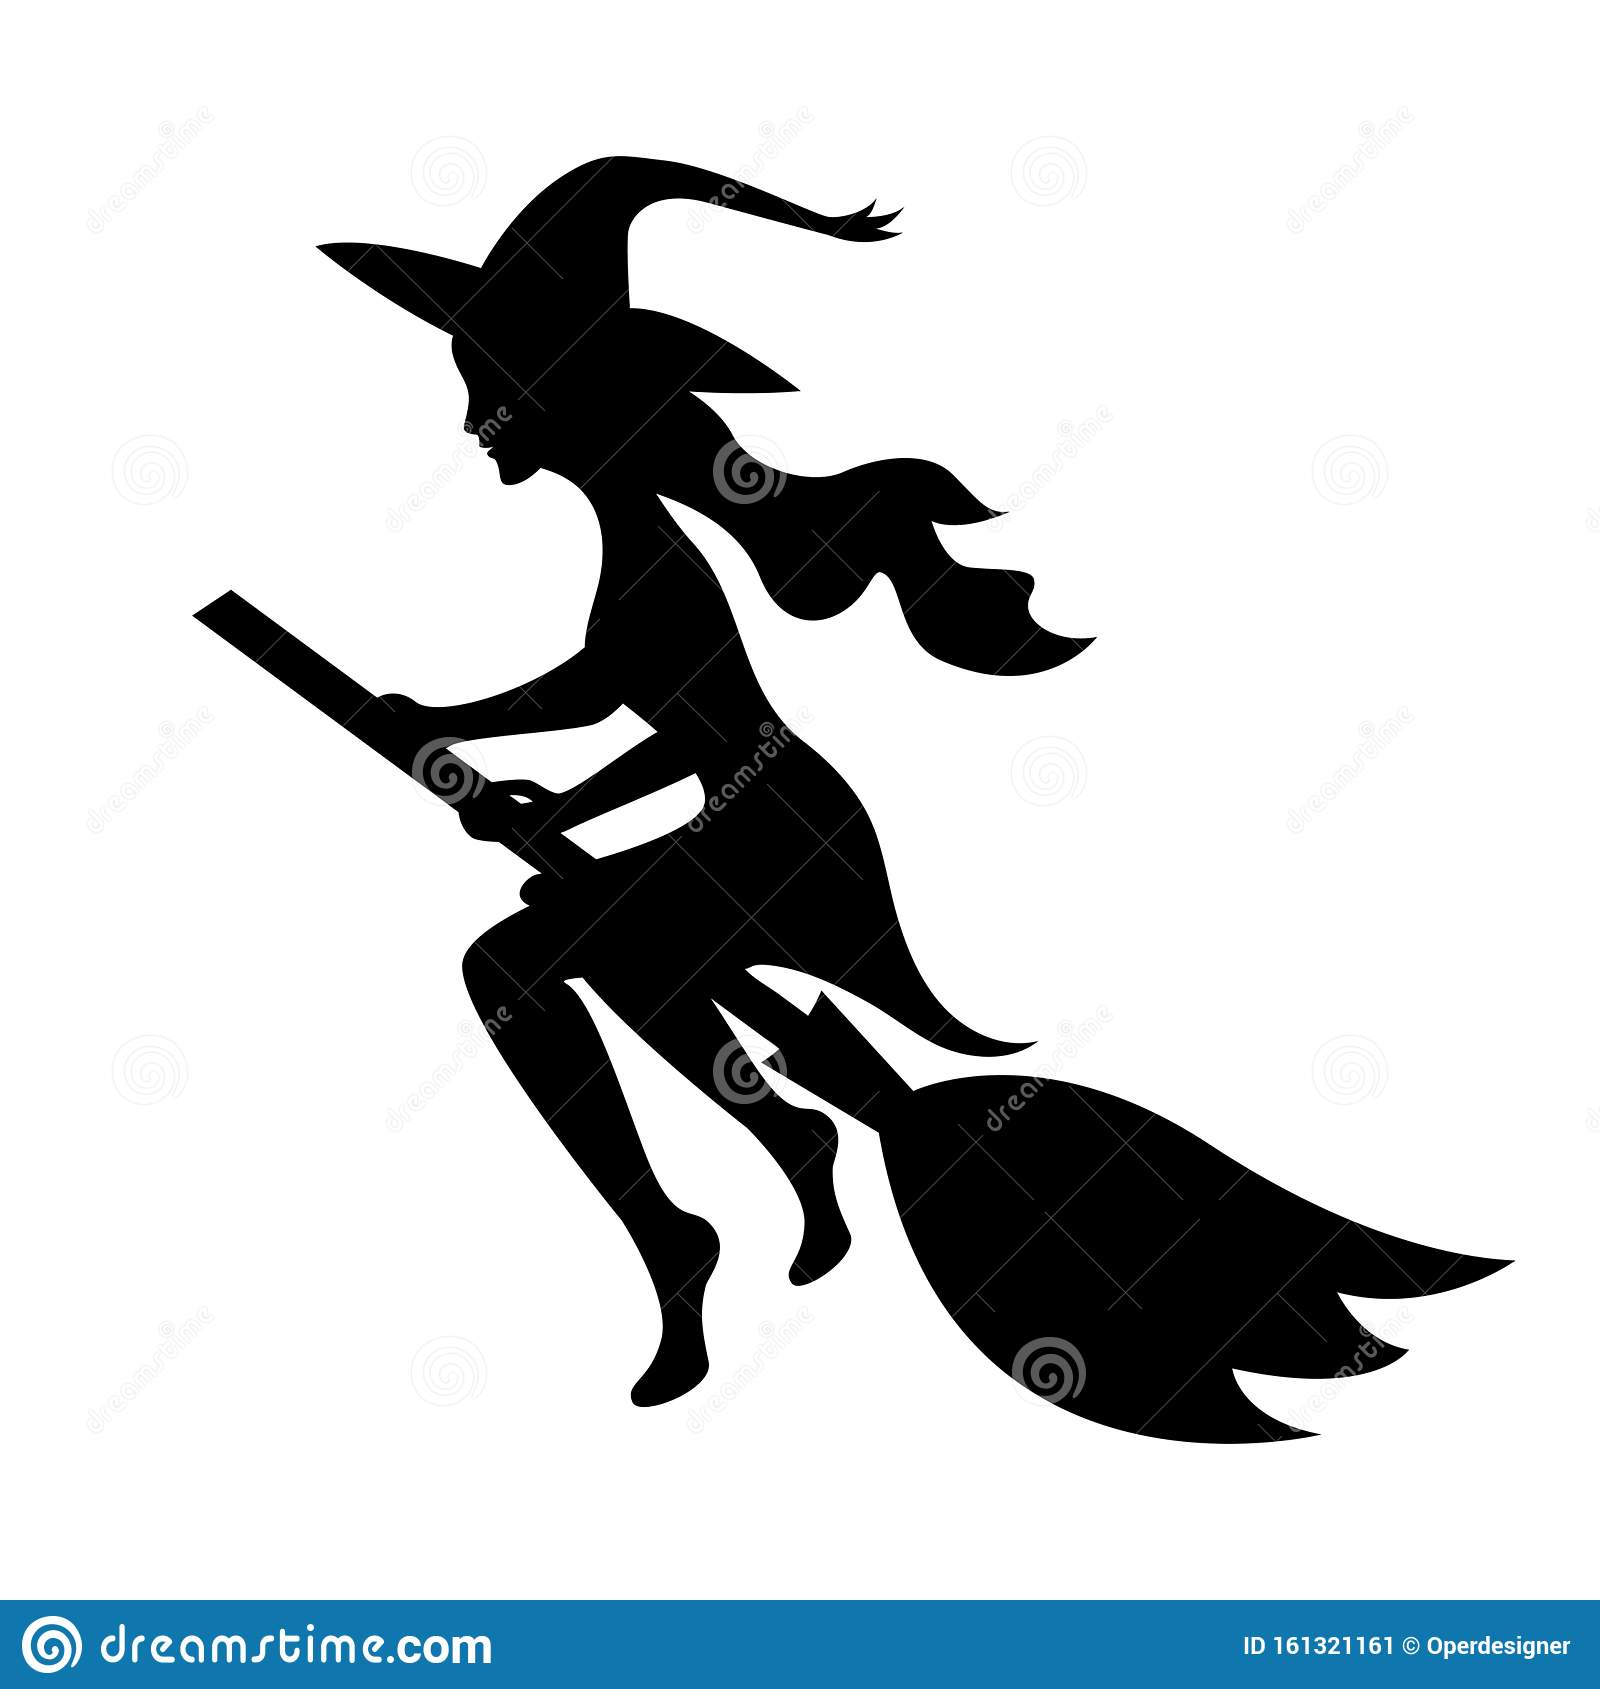 Witch On A Broomstick Black Silhouette. Halloween Scary